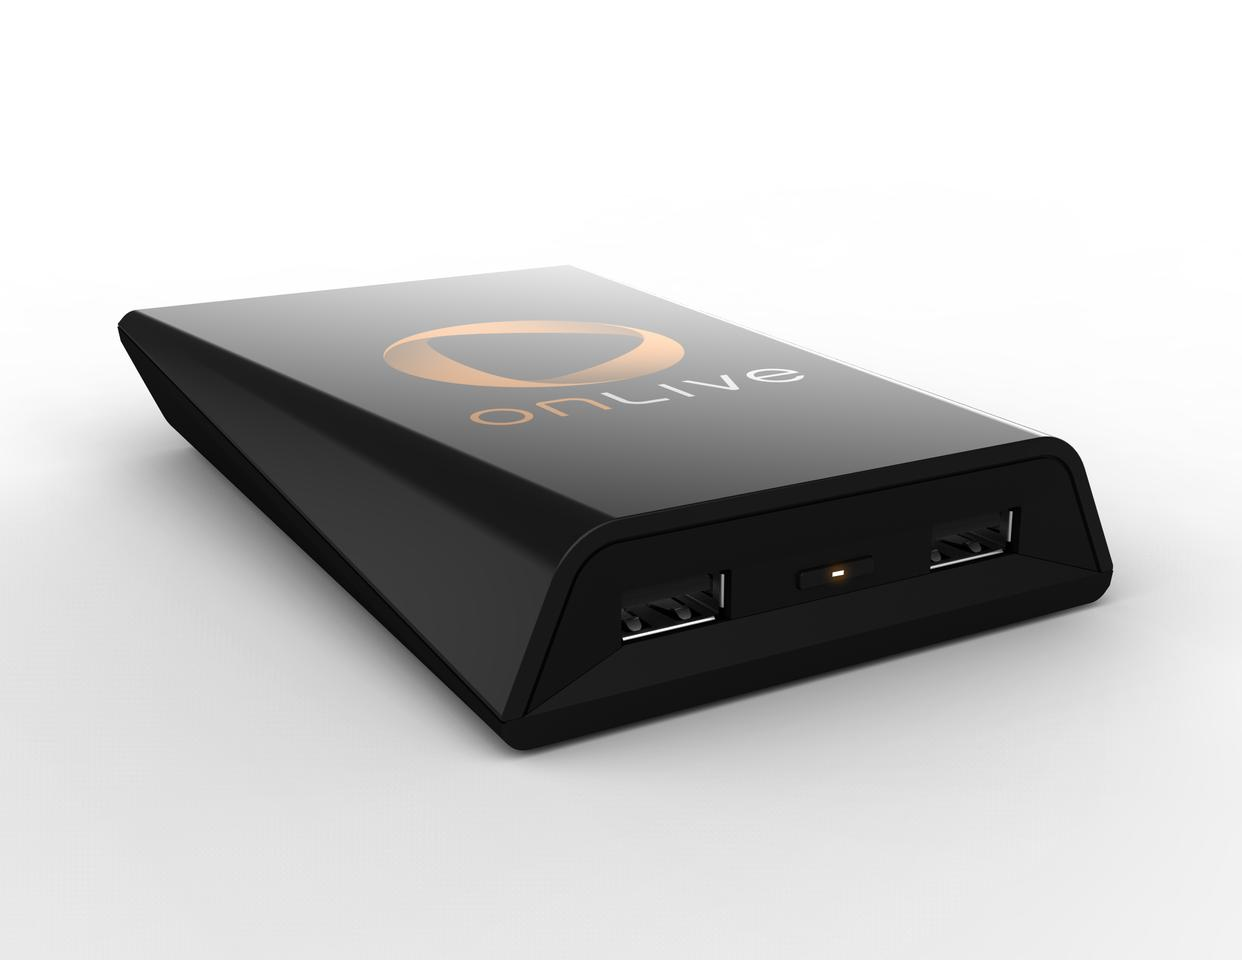 The Onlive Game System adapter which bridges the gap between TV and router to deliver online games direct to the television screen